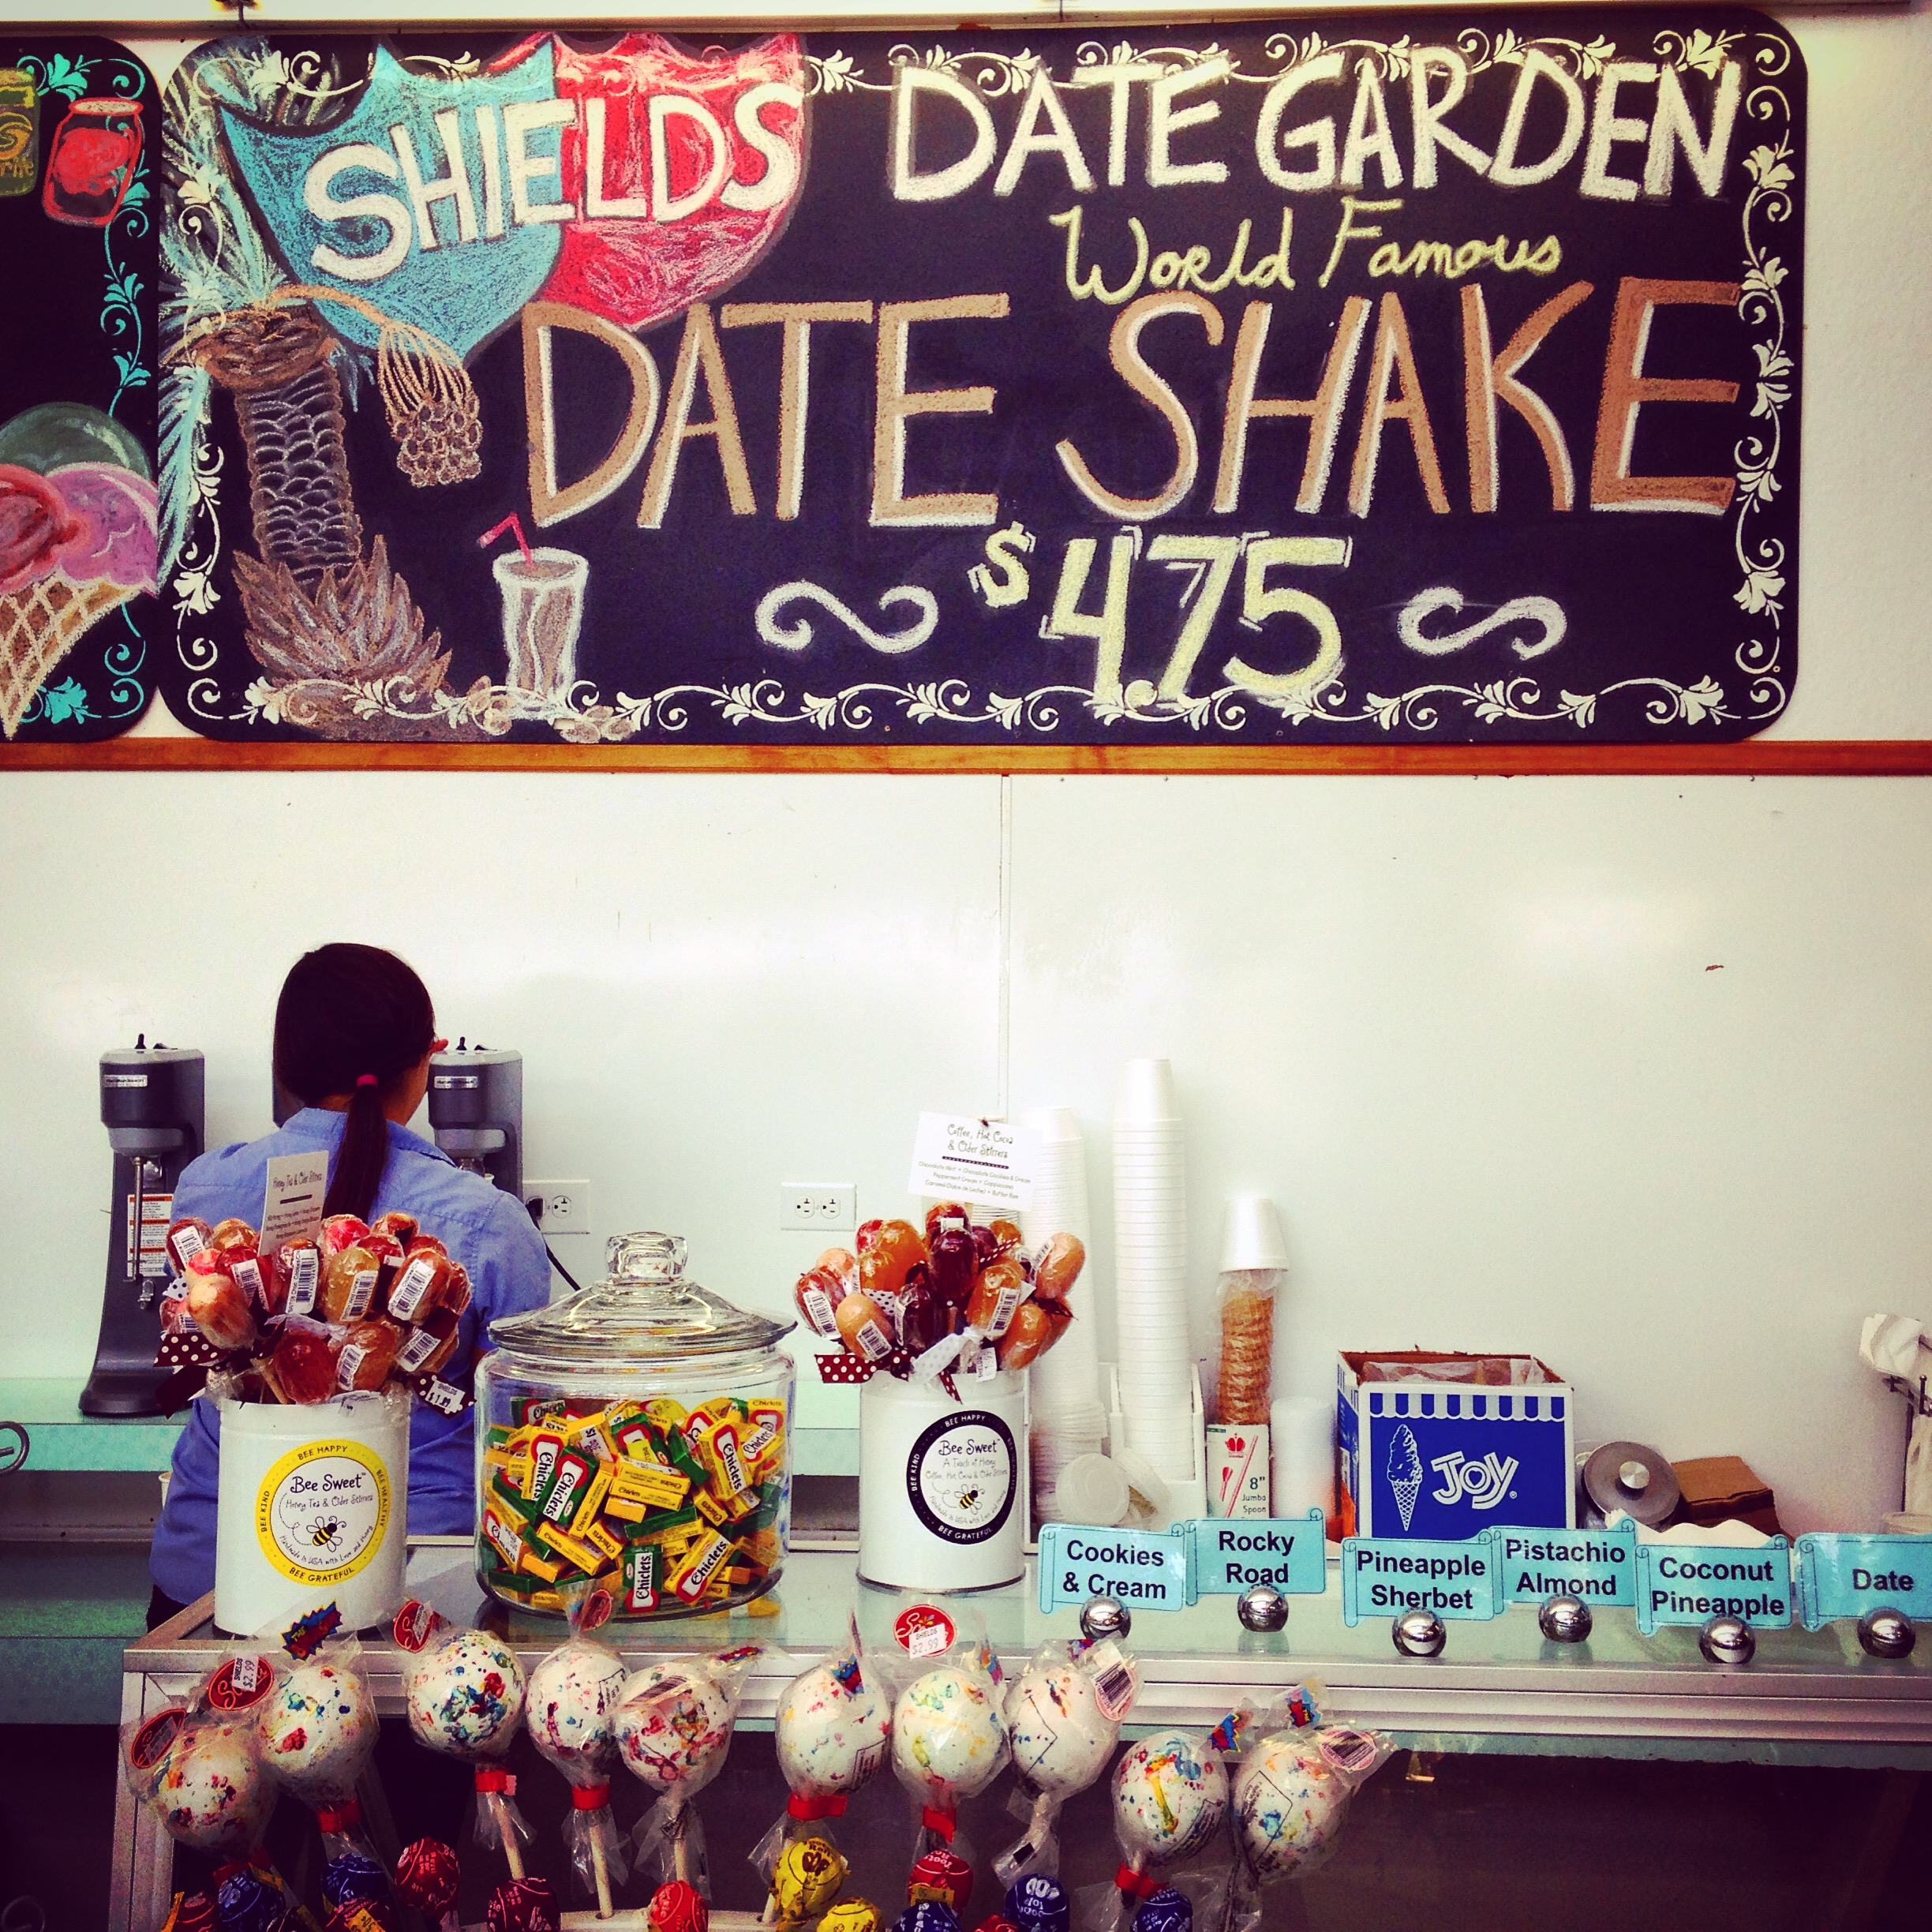 Even as a Lactose Intolerant person, I could not resist the delicious Date Shake!